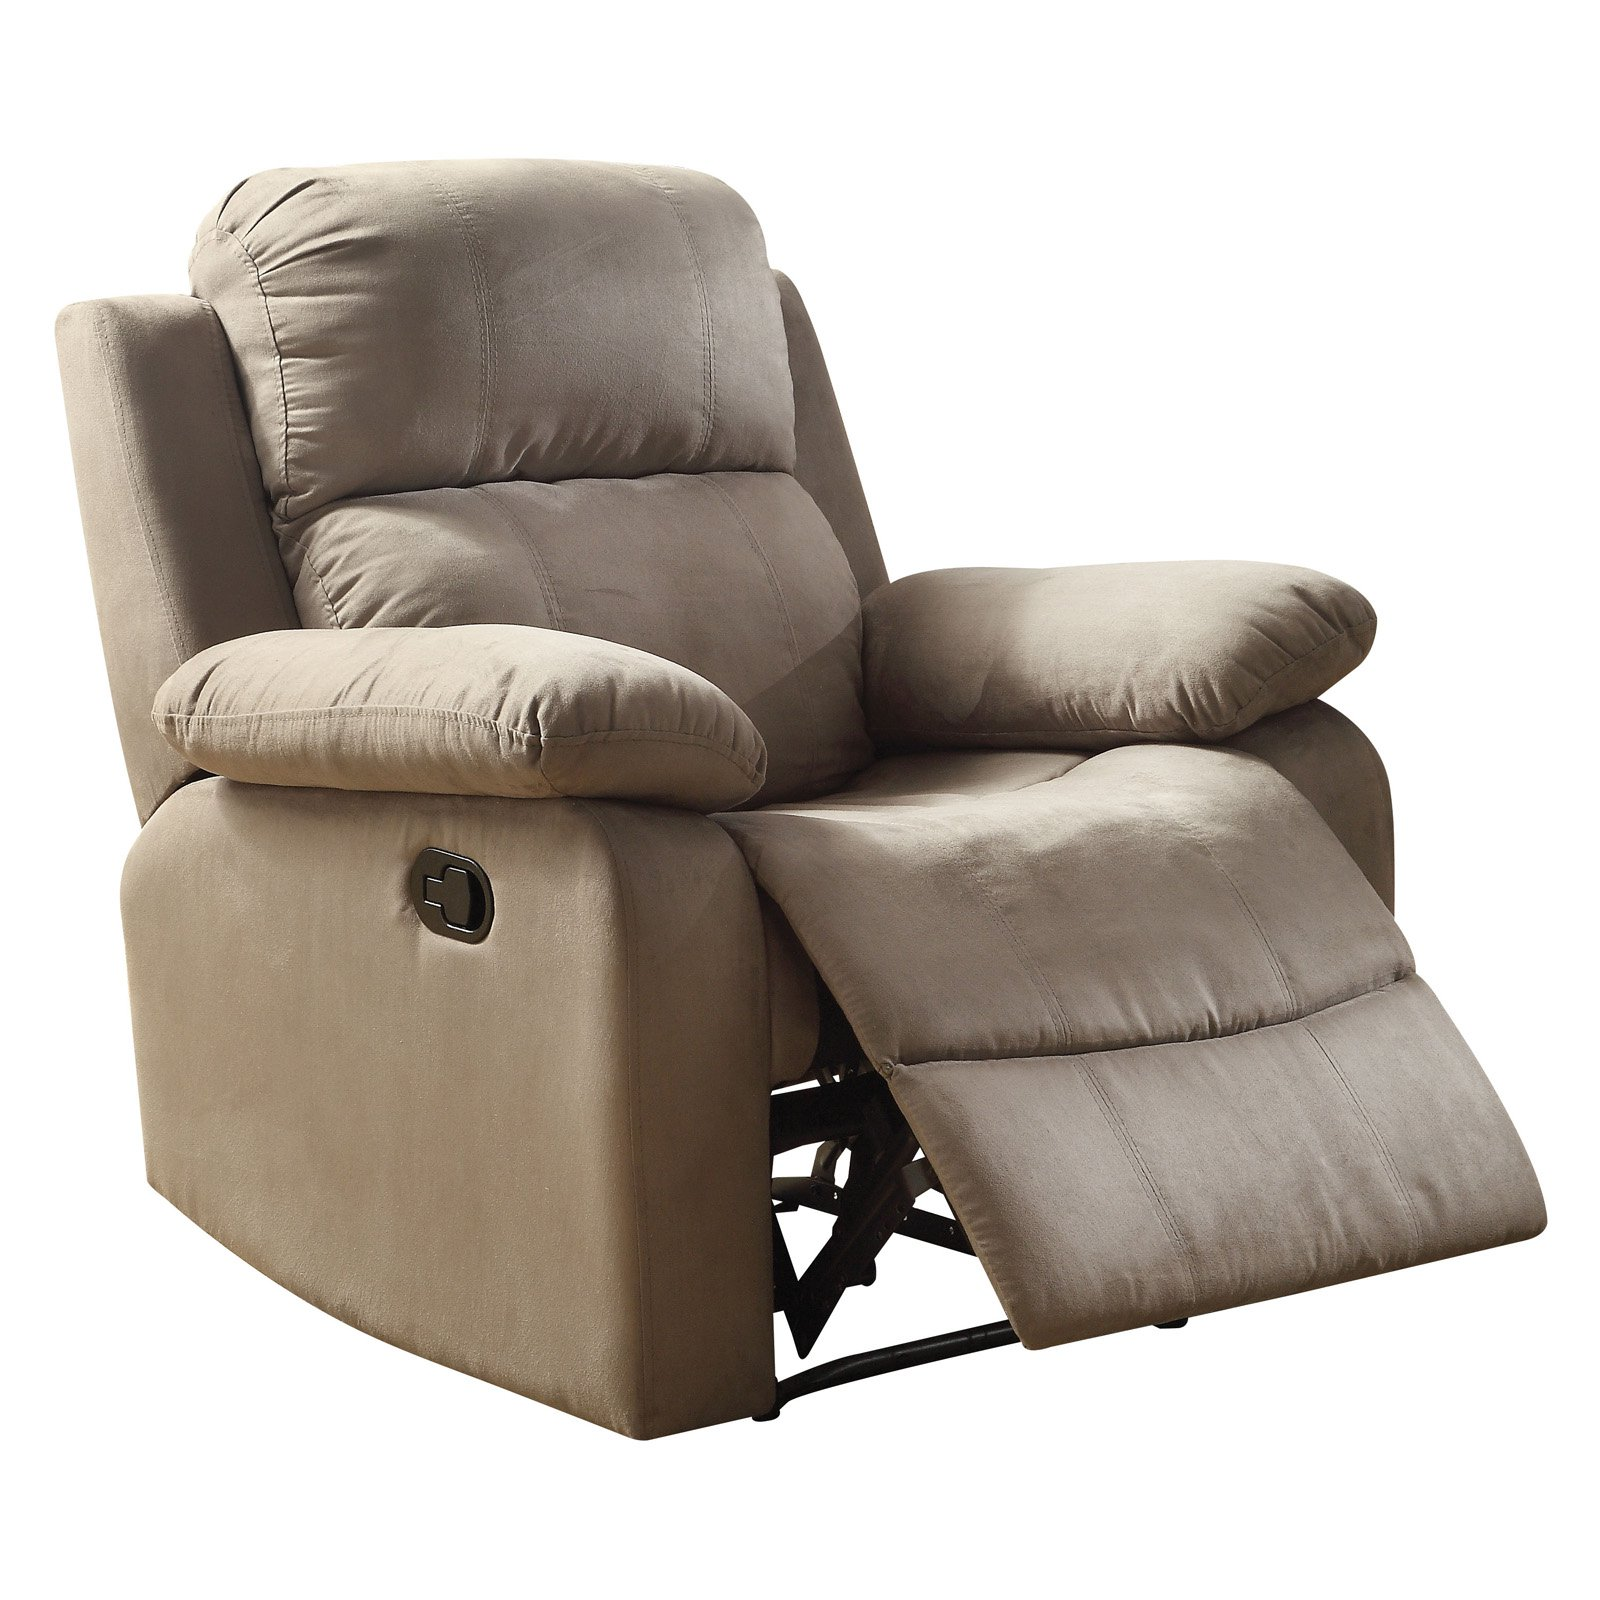 ACME Parklon Recliner, Multiple Colors by Acme Furniture